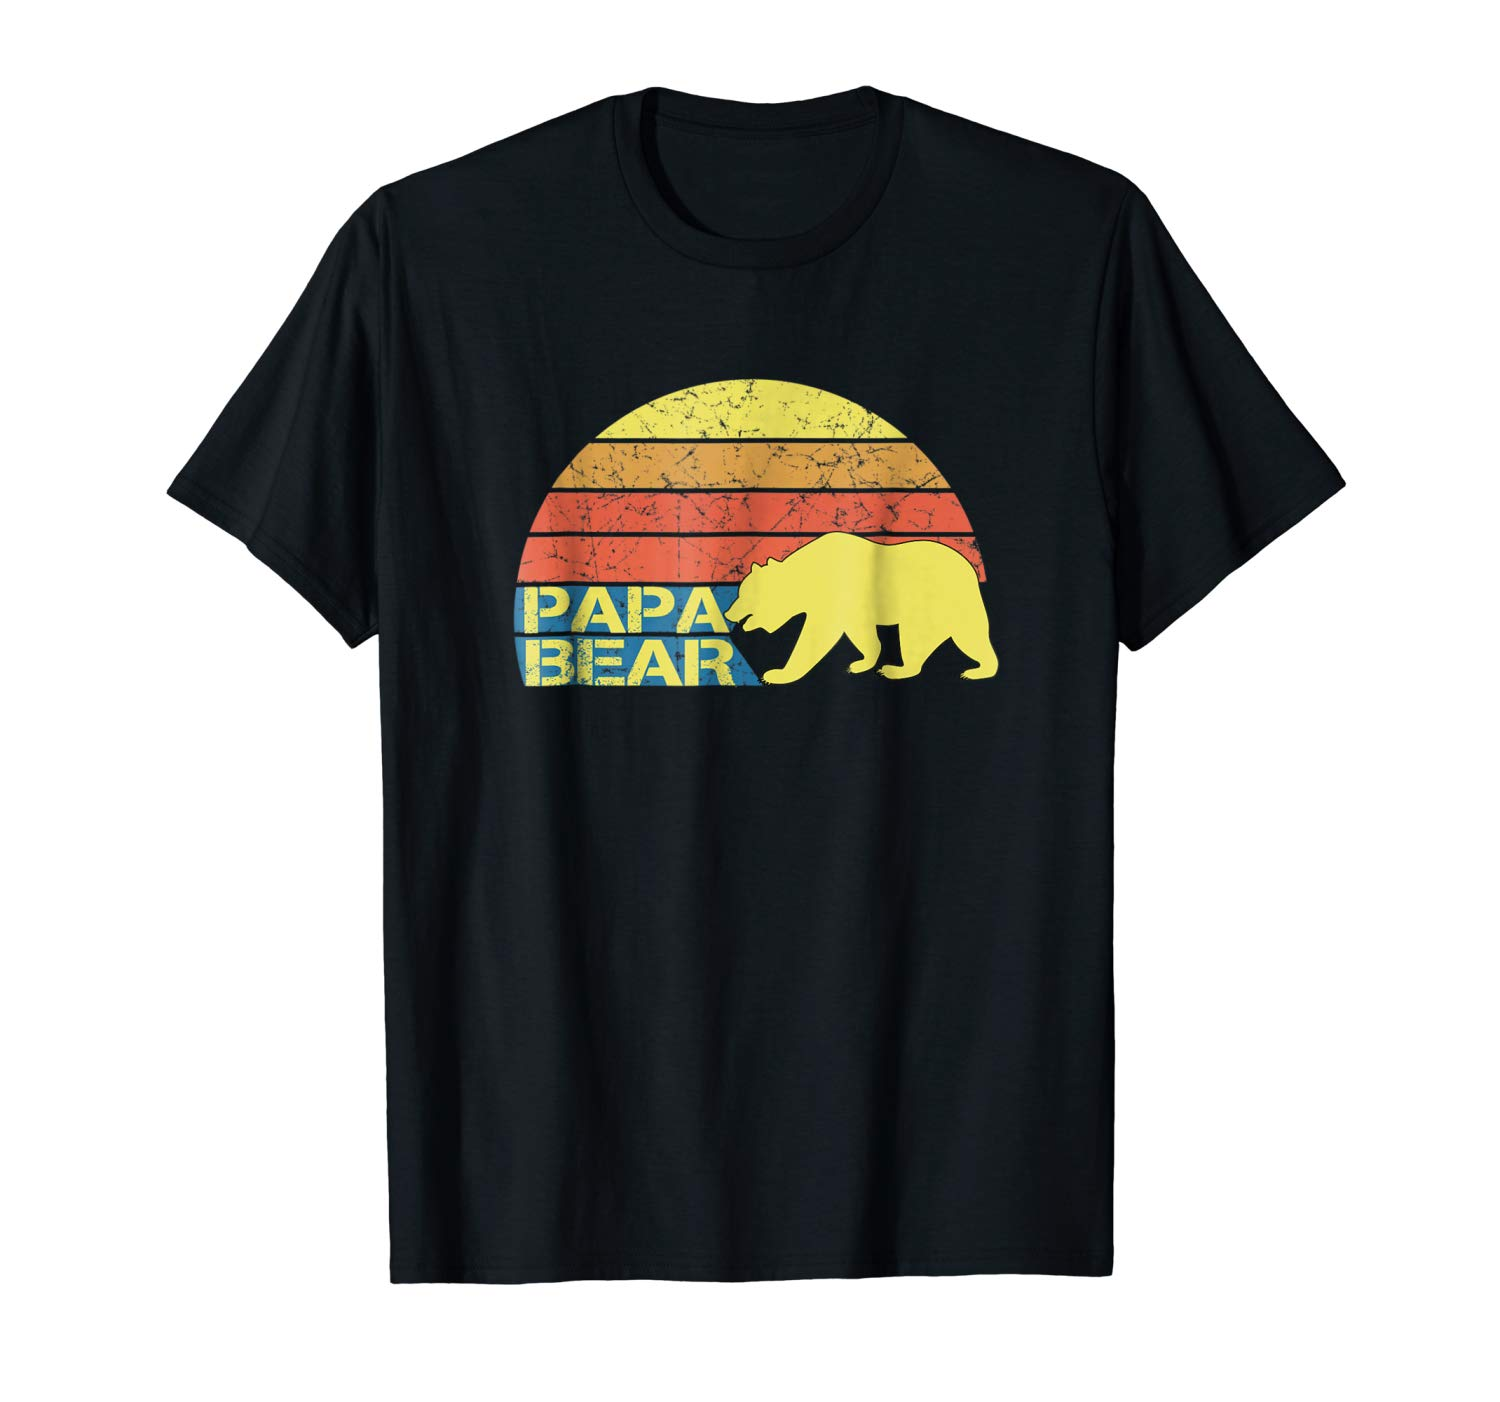 S Retro Papa Bear T Shirt For Dads Tures A Vintage Design